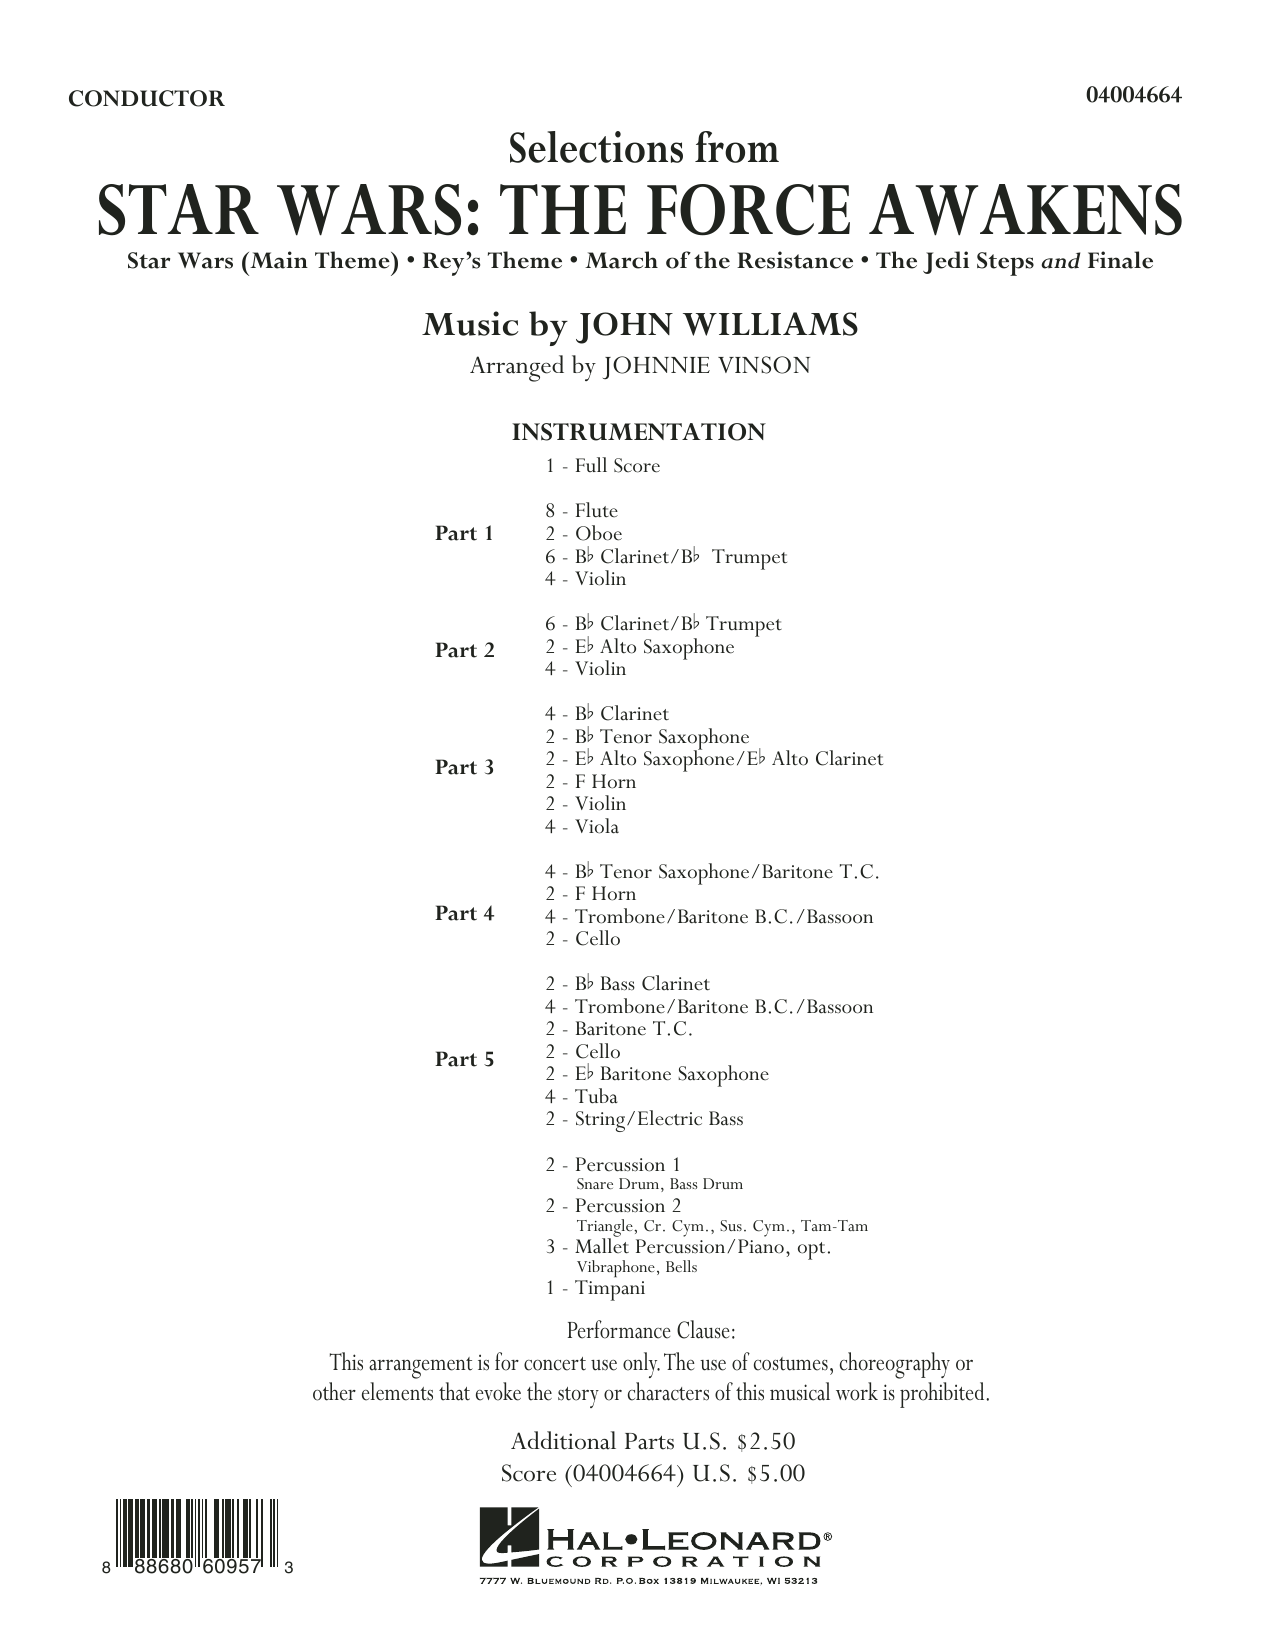 Johnnie Vinson Selections from Star Wars: The Force Awakens - Conductor Score (Full Score) sheet music preview music notes and score for Concert Band including 24 page(s)